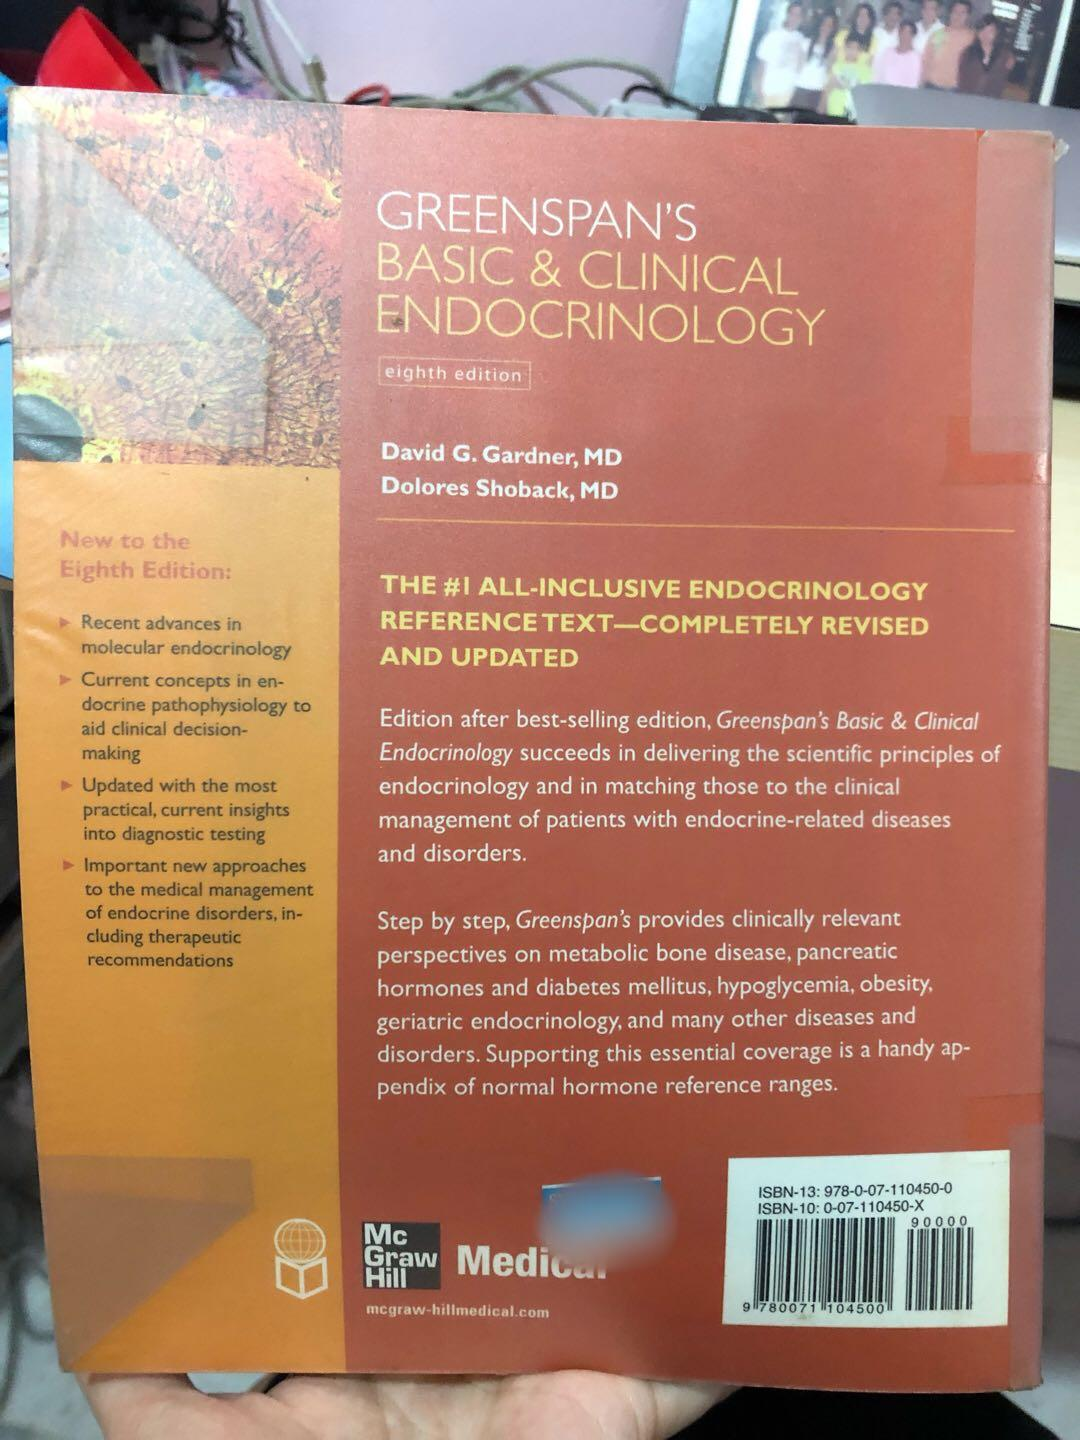 Greenspan's basic & clinical endocrinology 8th edition